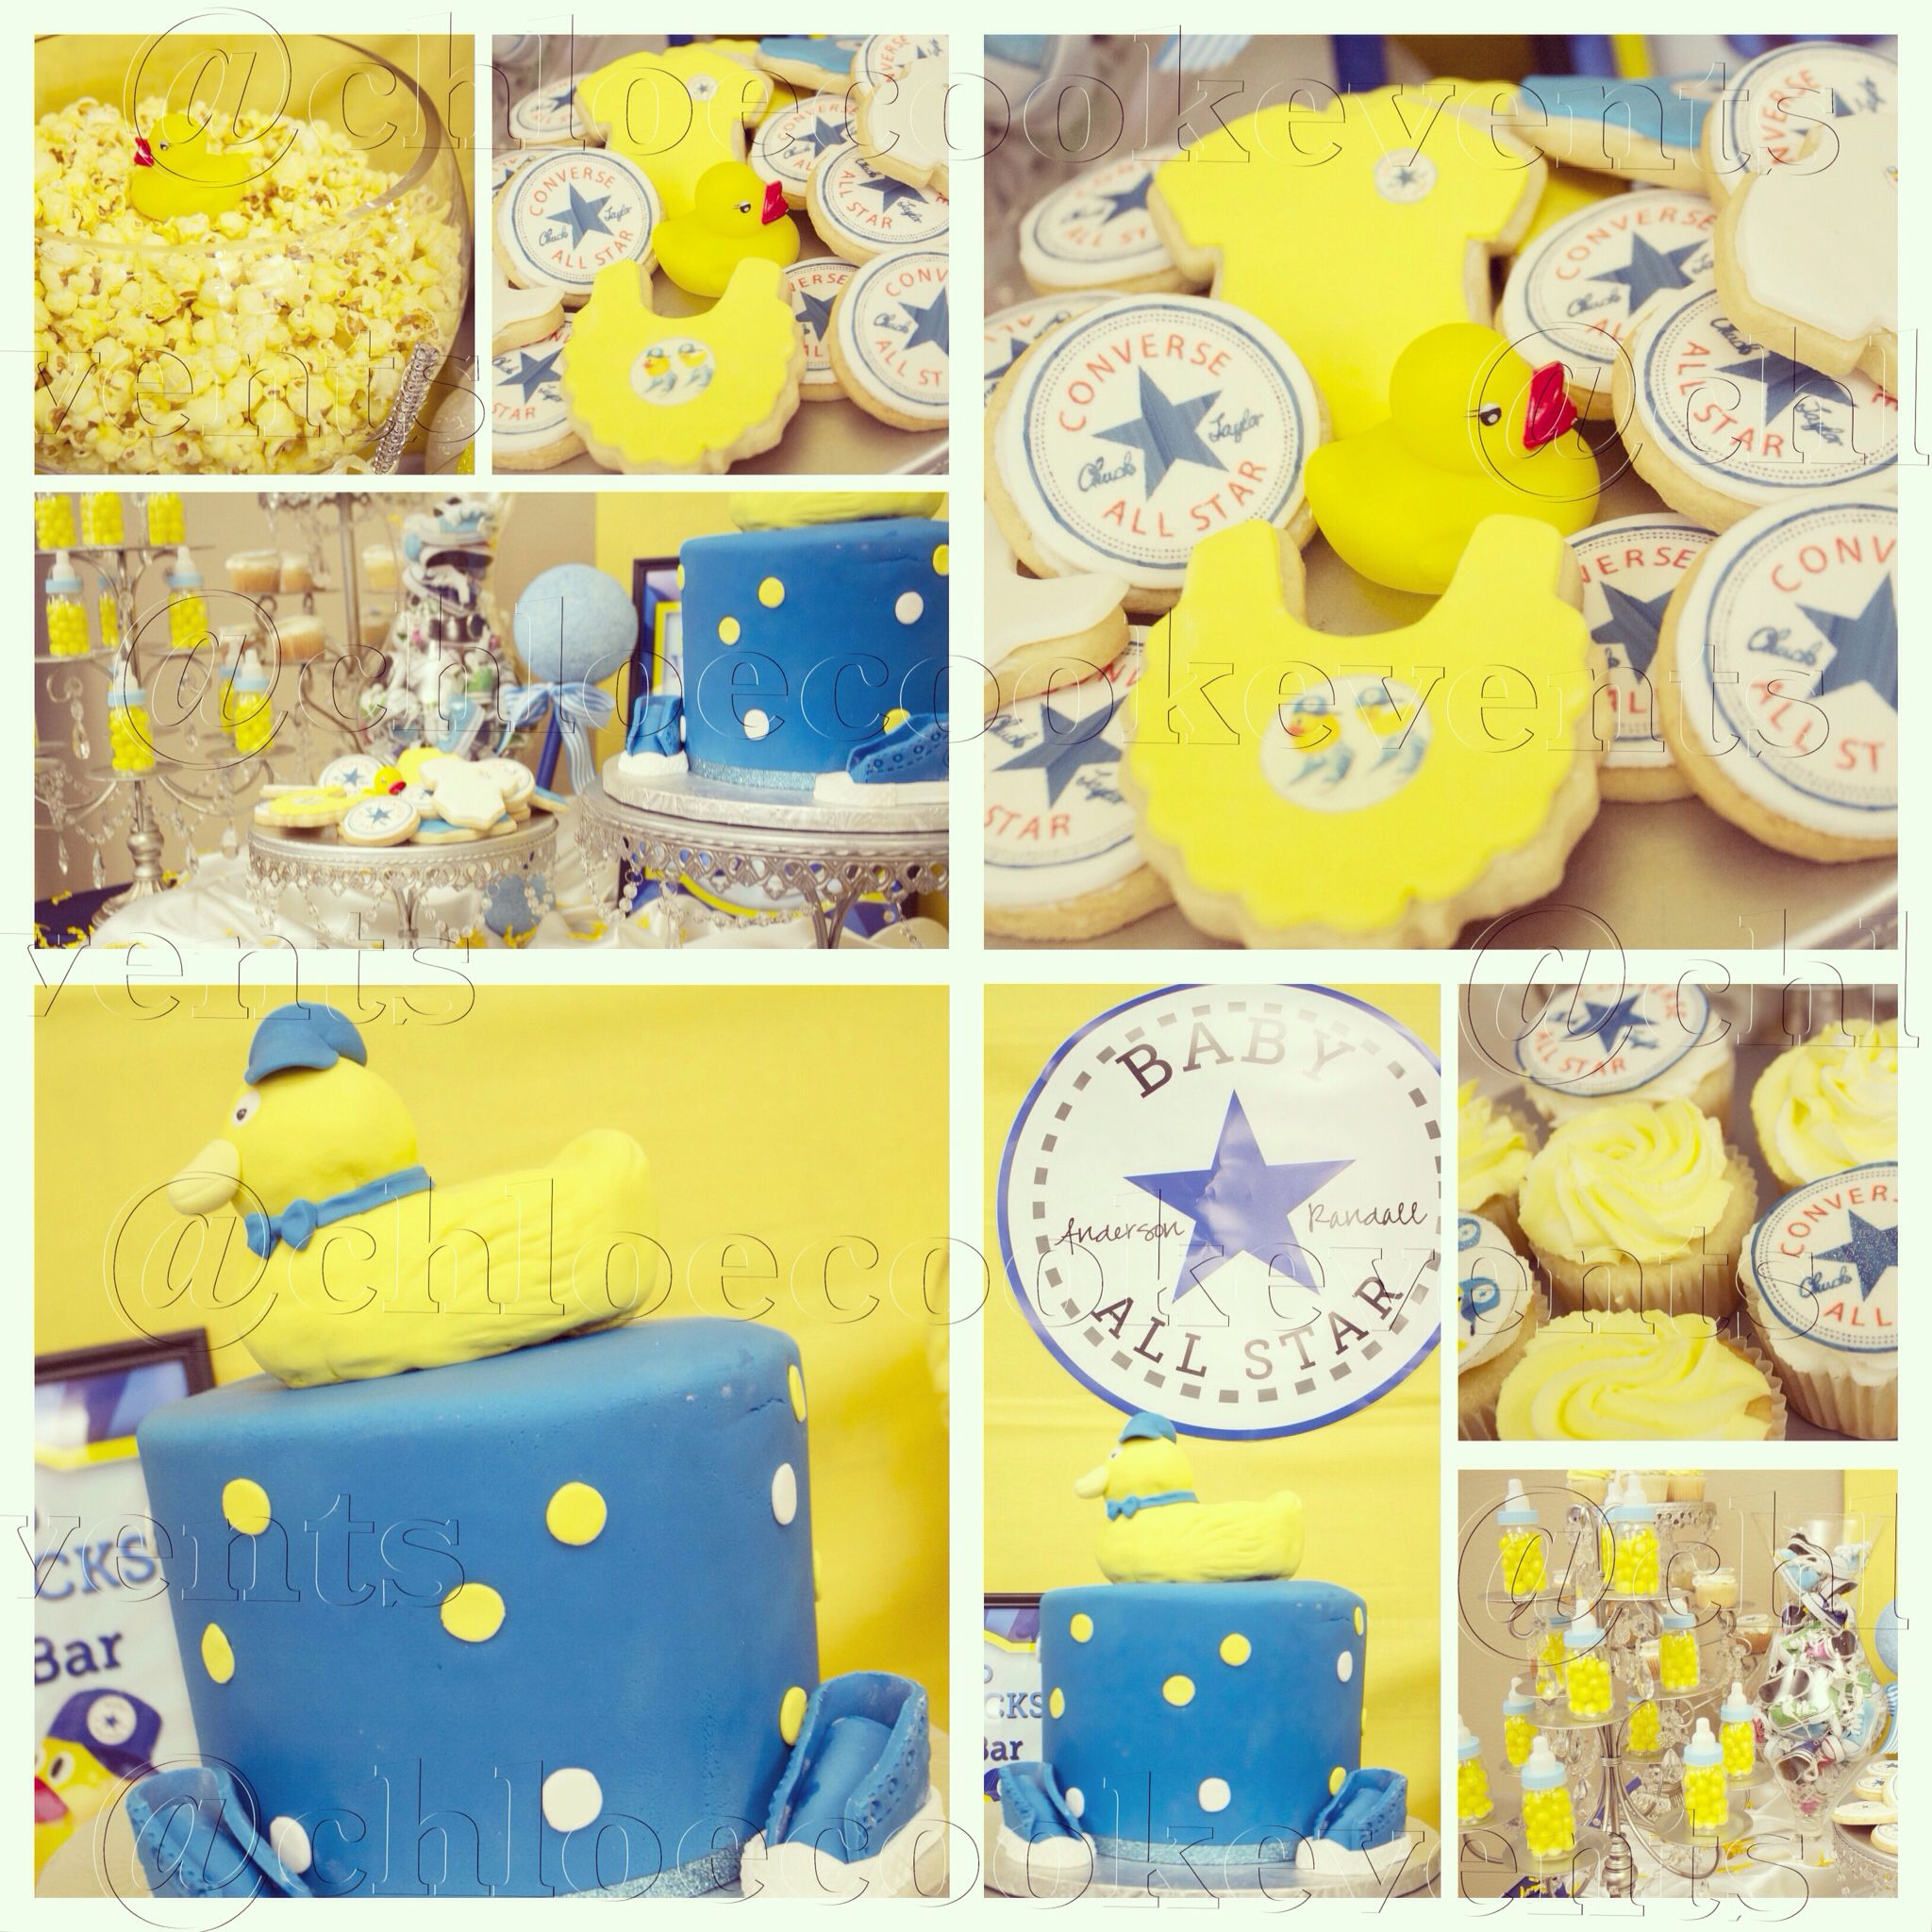 Chucks and Ducks converse themed baby boy shower